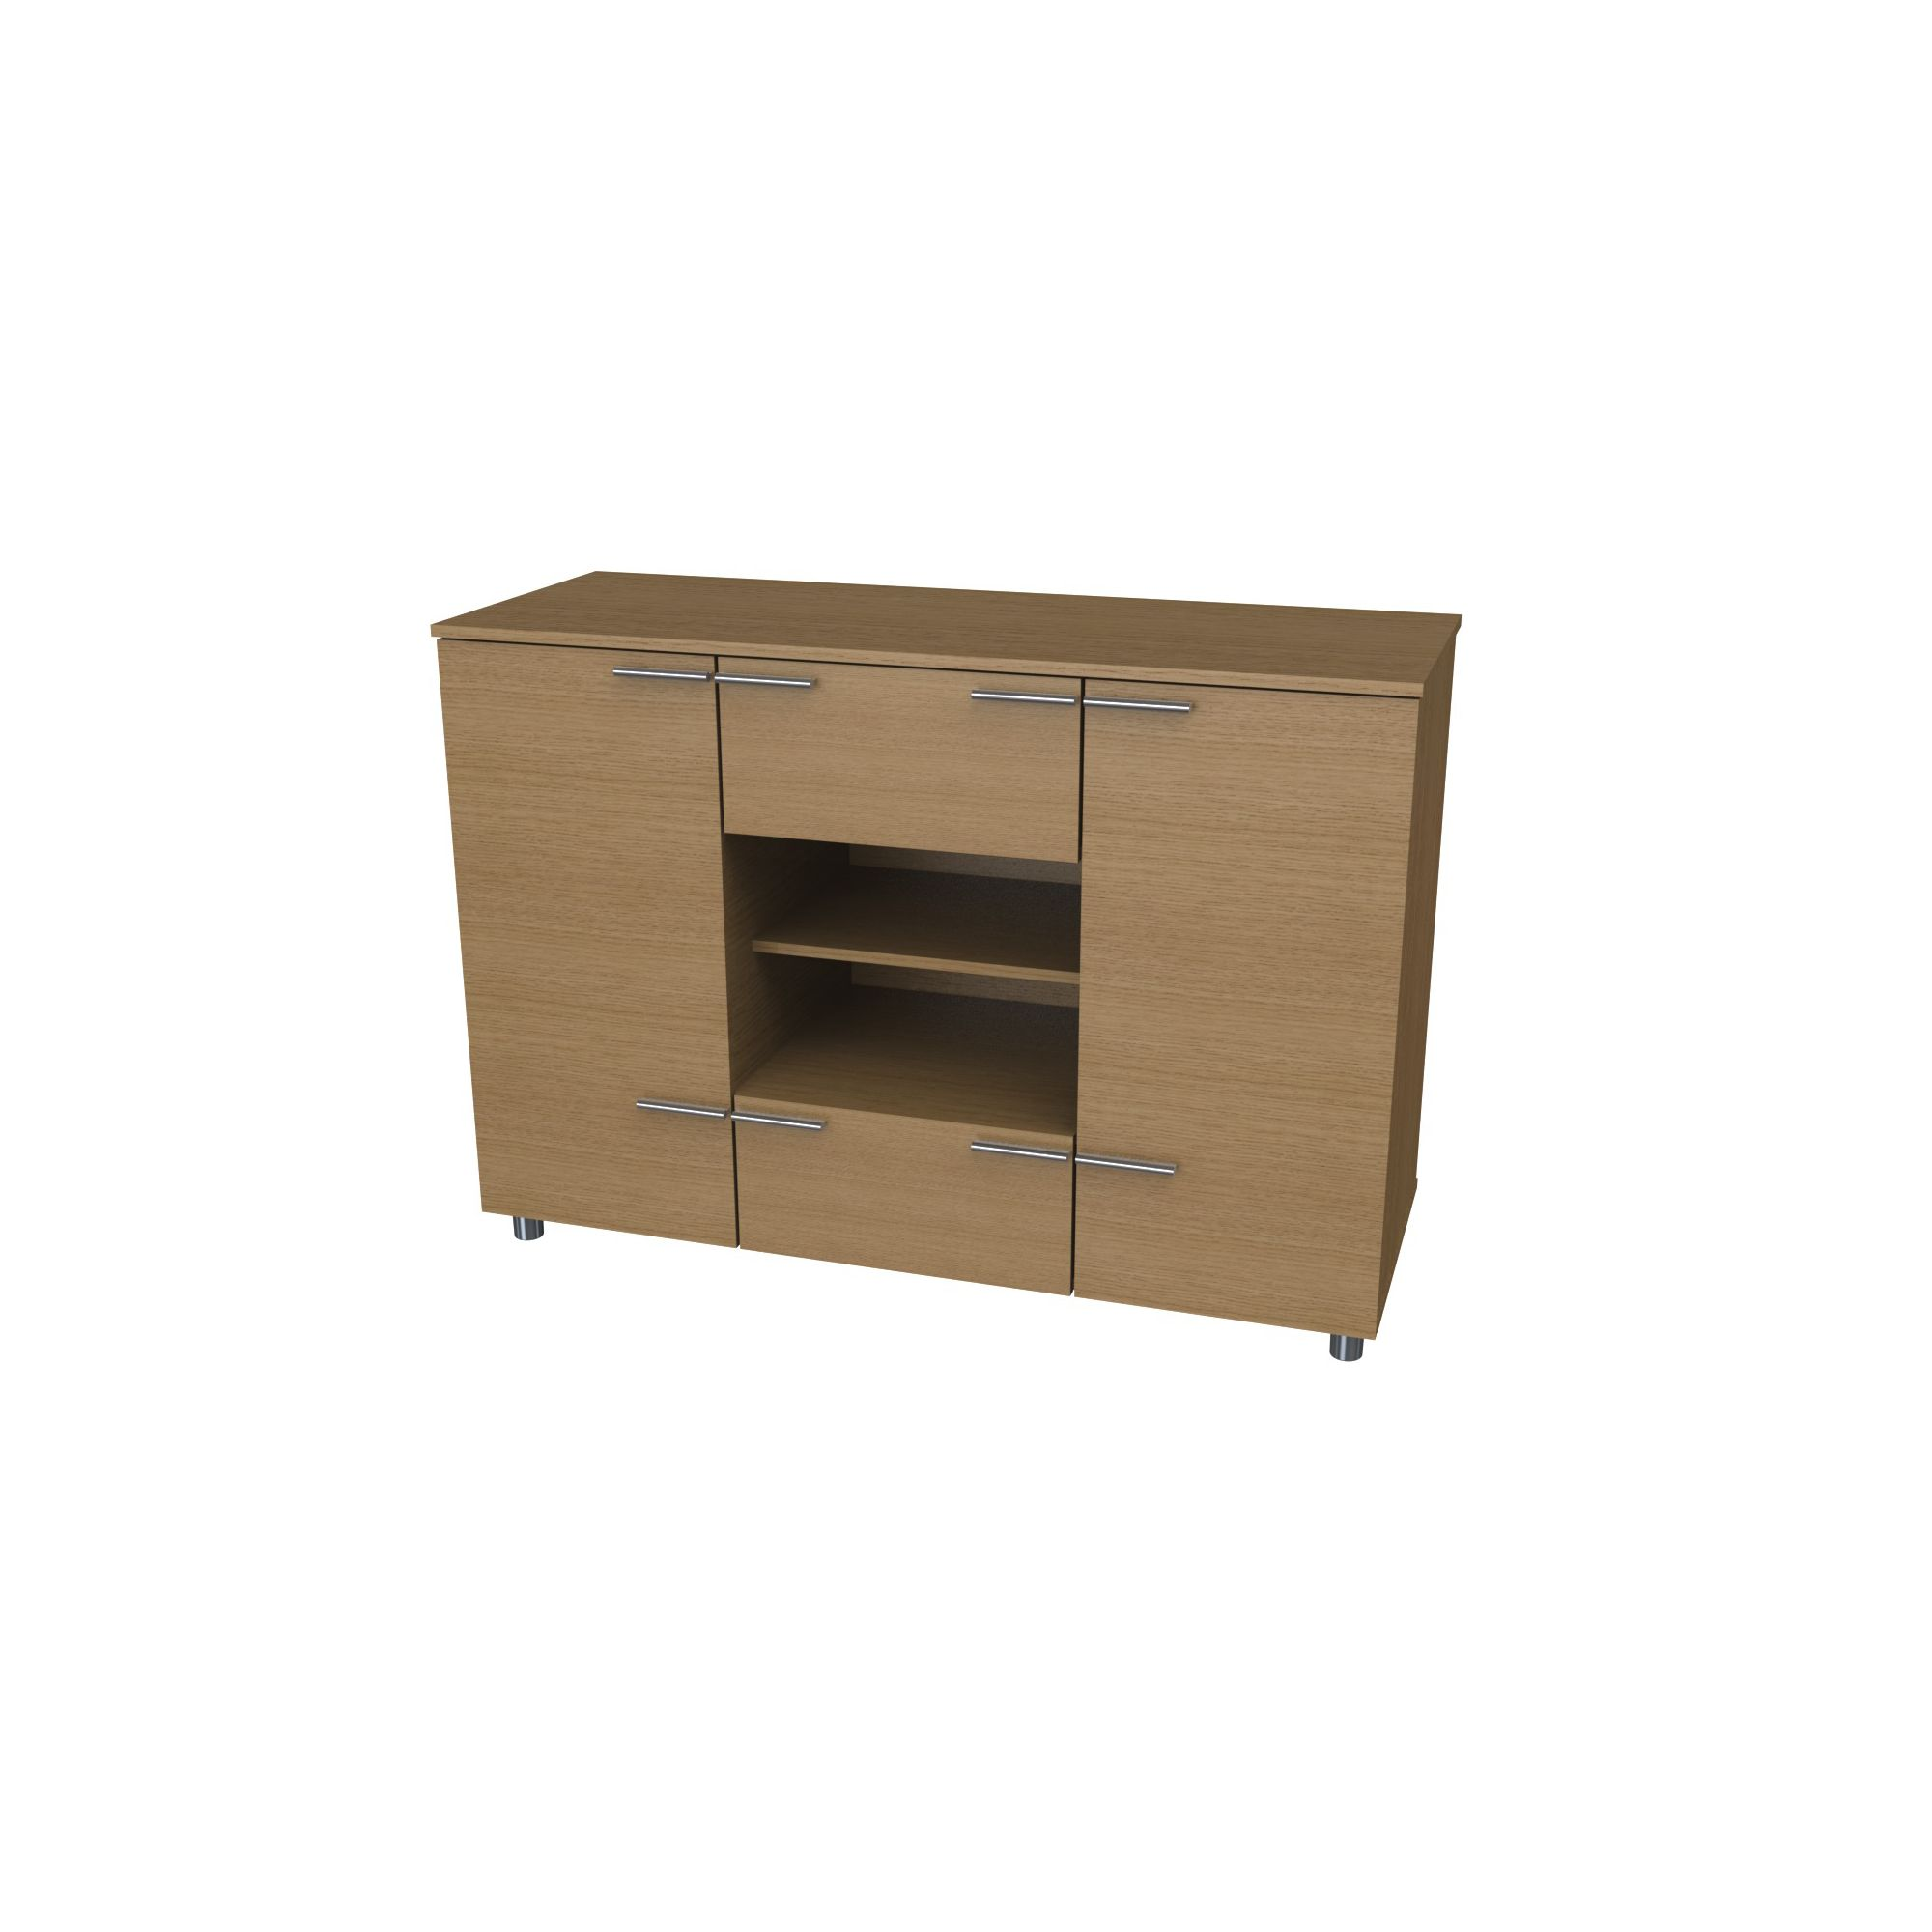 Ashcraft Chester Sideboard - Beech at Tescos Direct